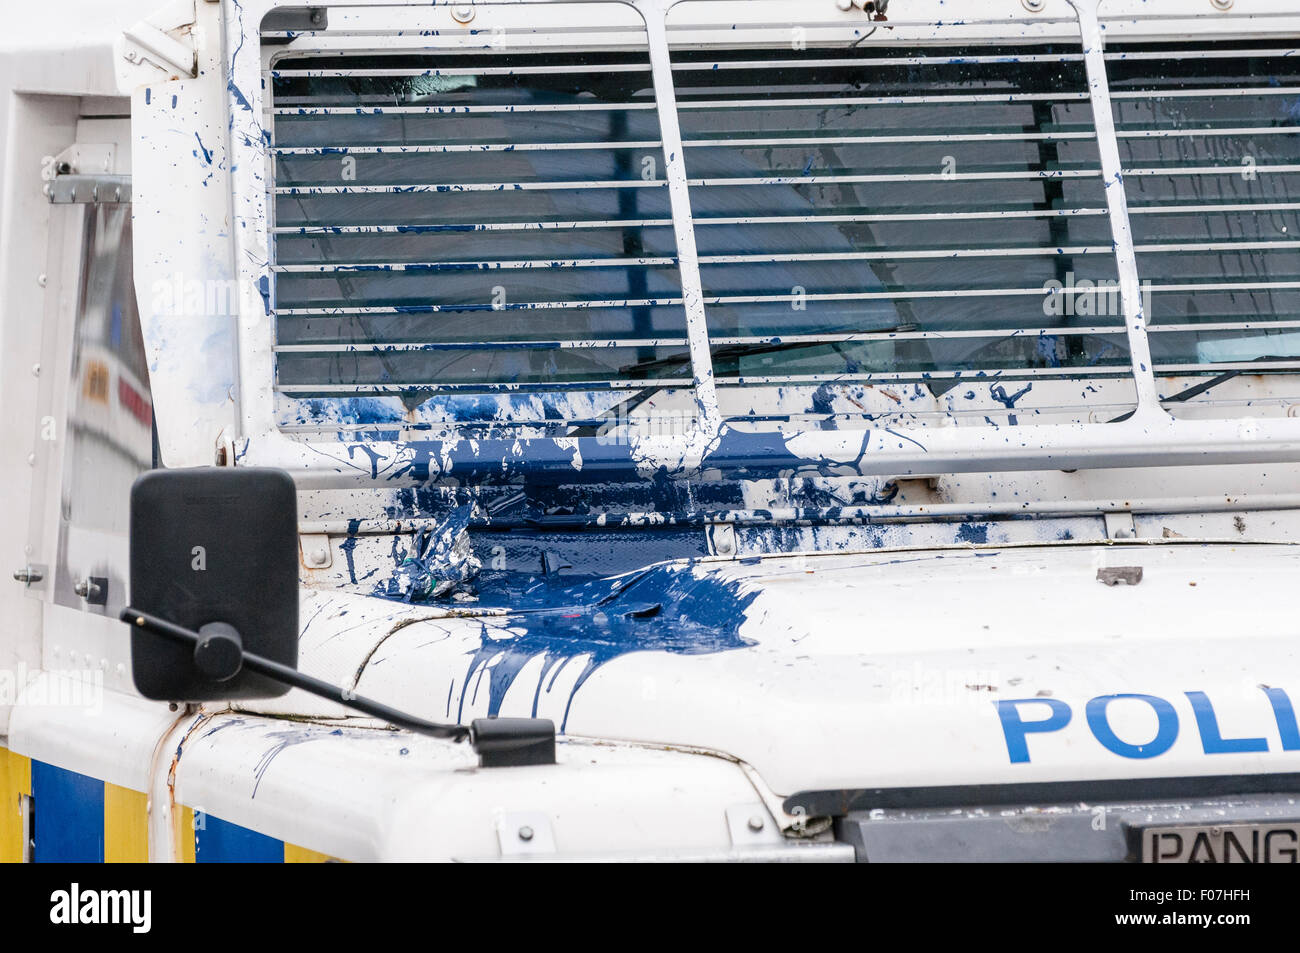 Belfast, Northern Ireland. 09 Aug 2015 - A PSNI landrover is hit with a paint bomb during a riot in Belfast Credit: - Stock Image